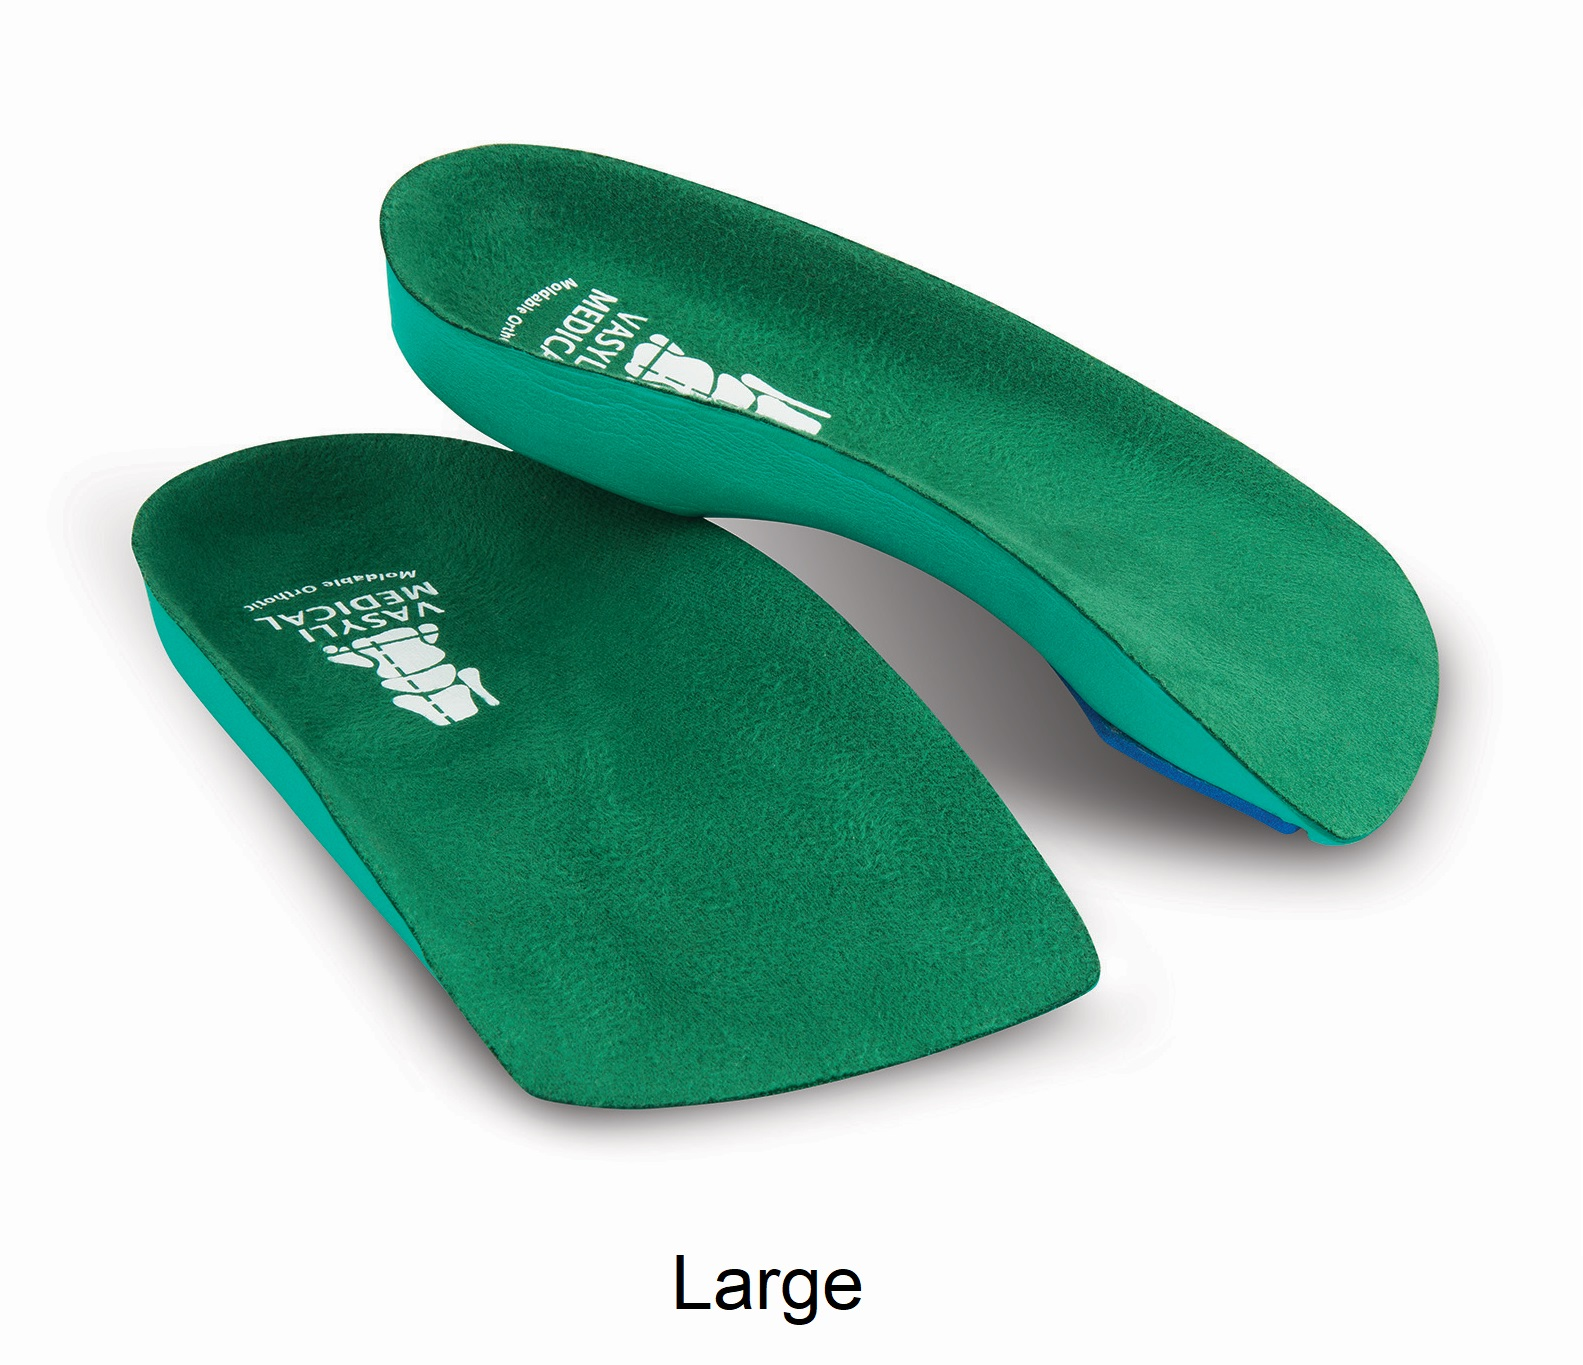 VASYLI 3/4-Length Custom GREEN (Soft Density) - Large - Men's 9.5 - 11, Women's 10.5 - 12